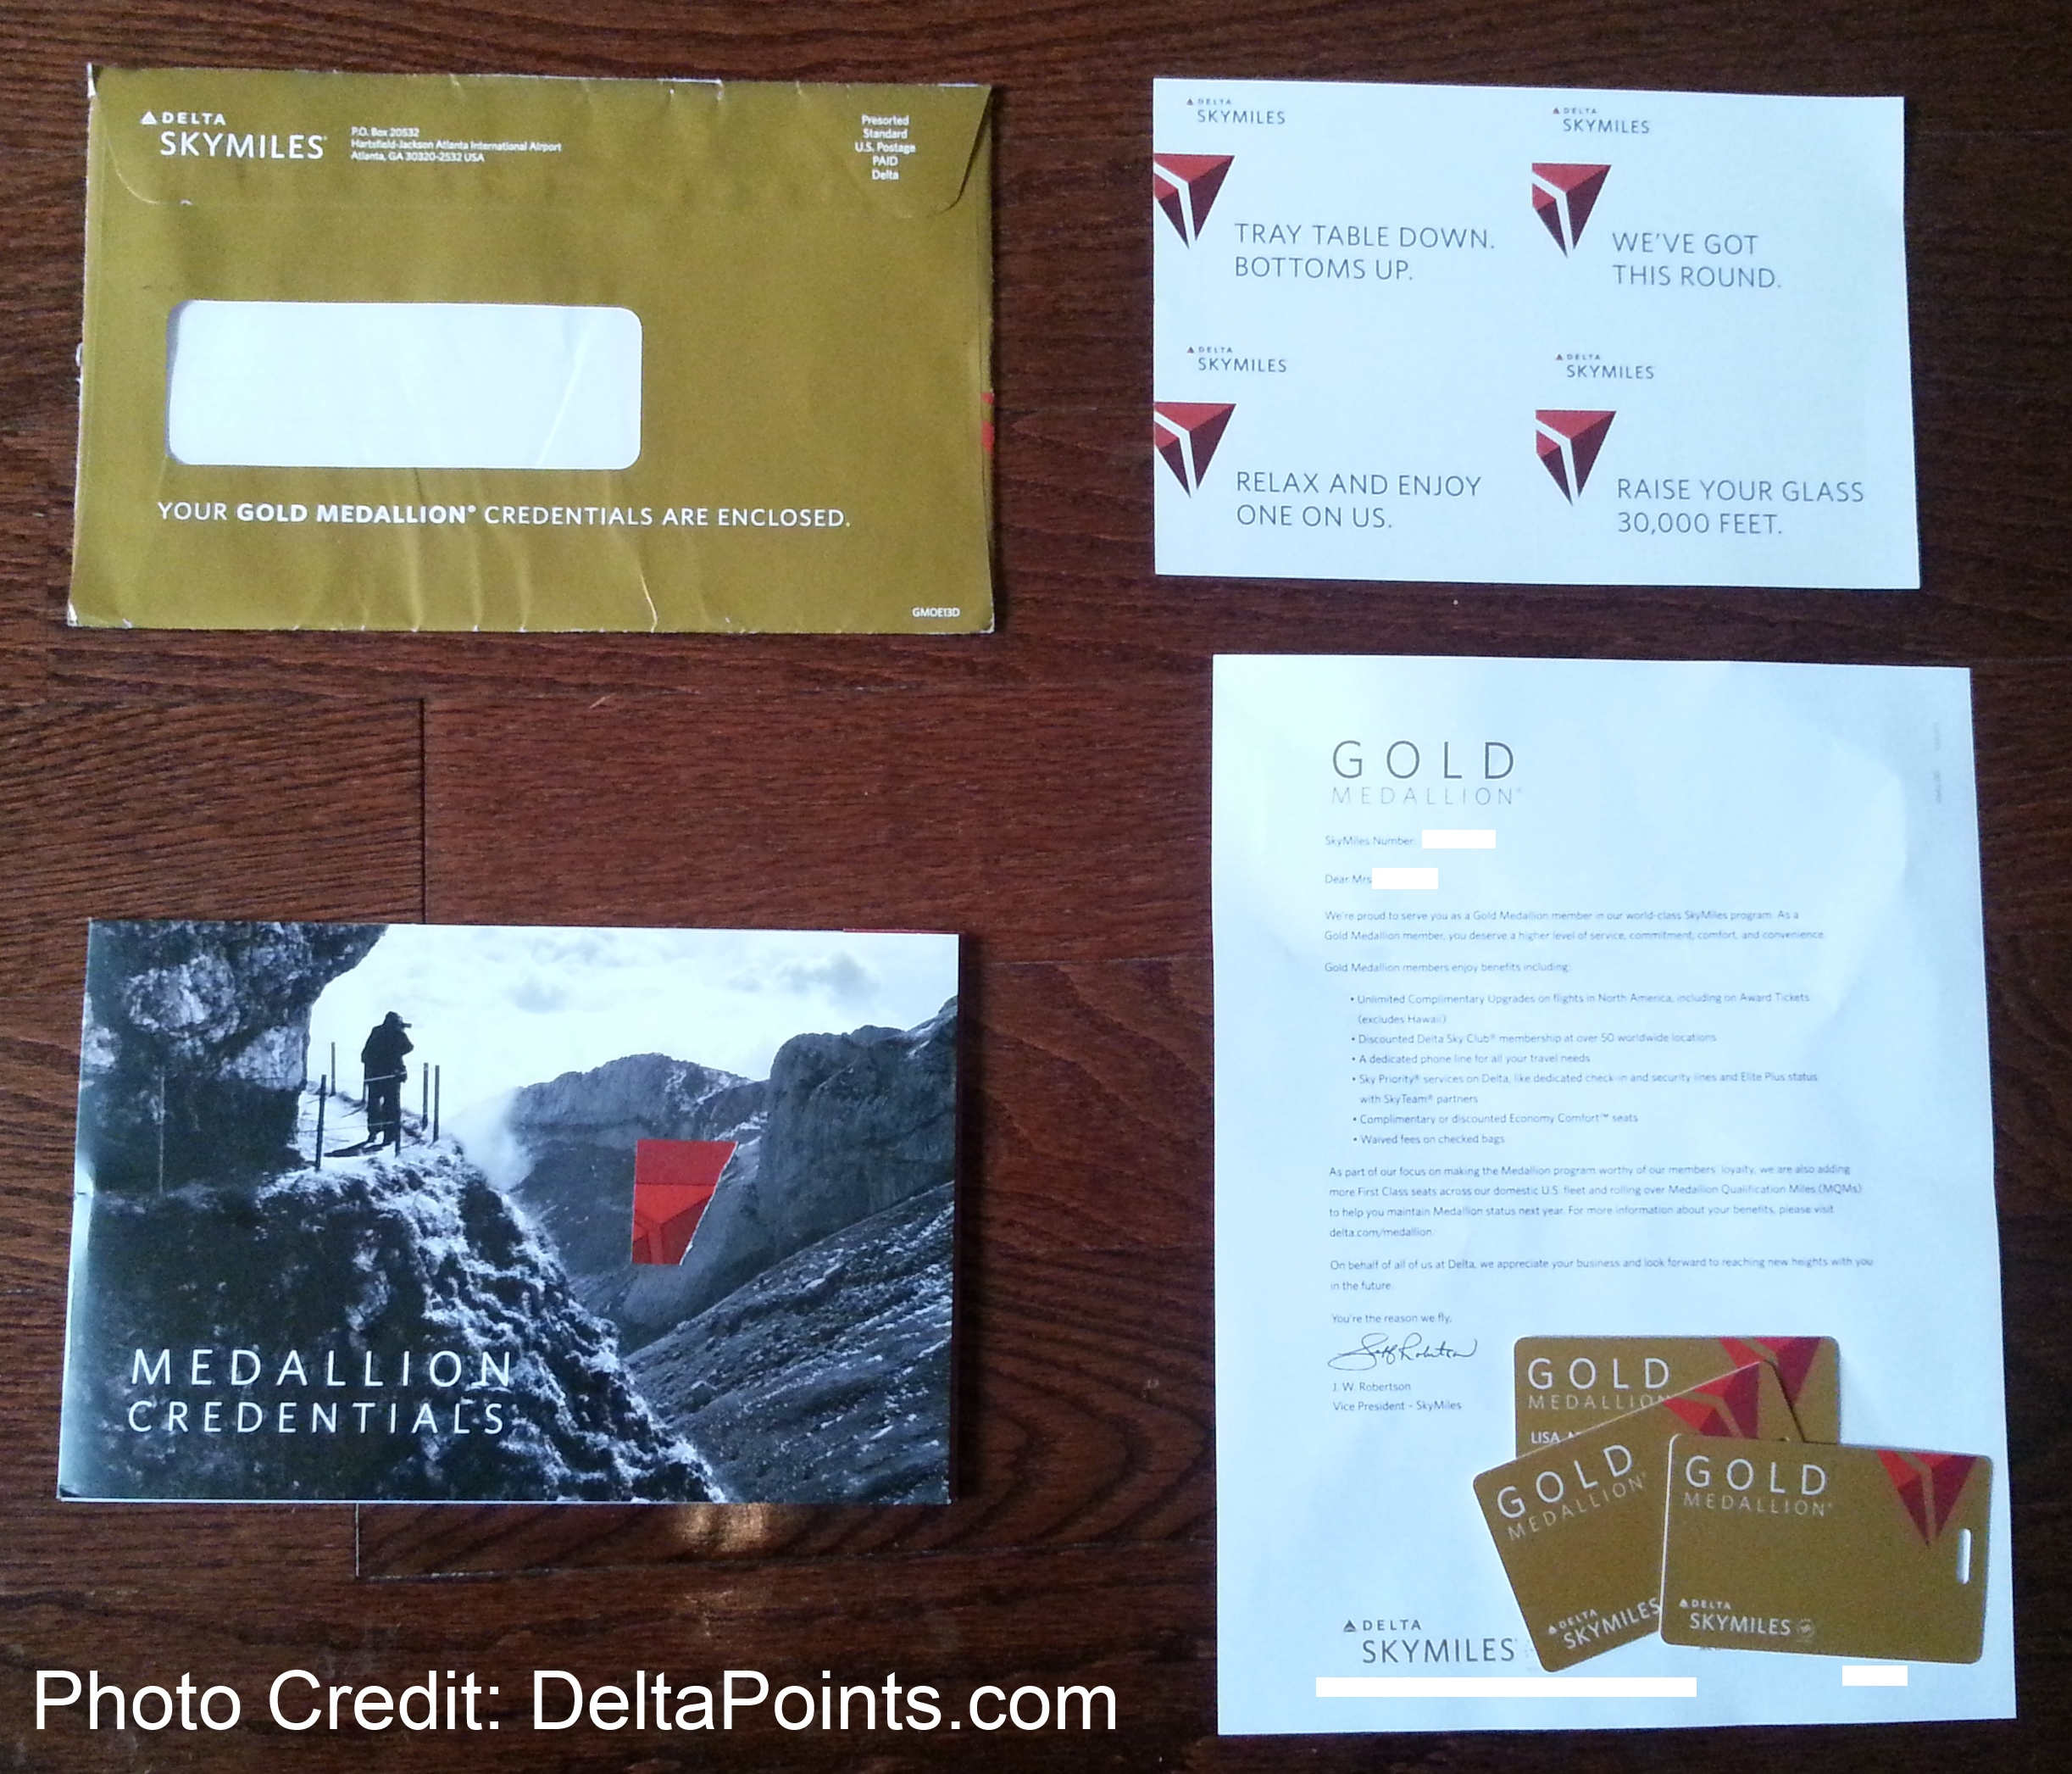 Lisa's gifted GOLD medallion credentials have arrived! Let's see what is inside ...